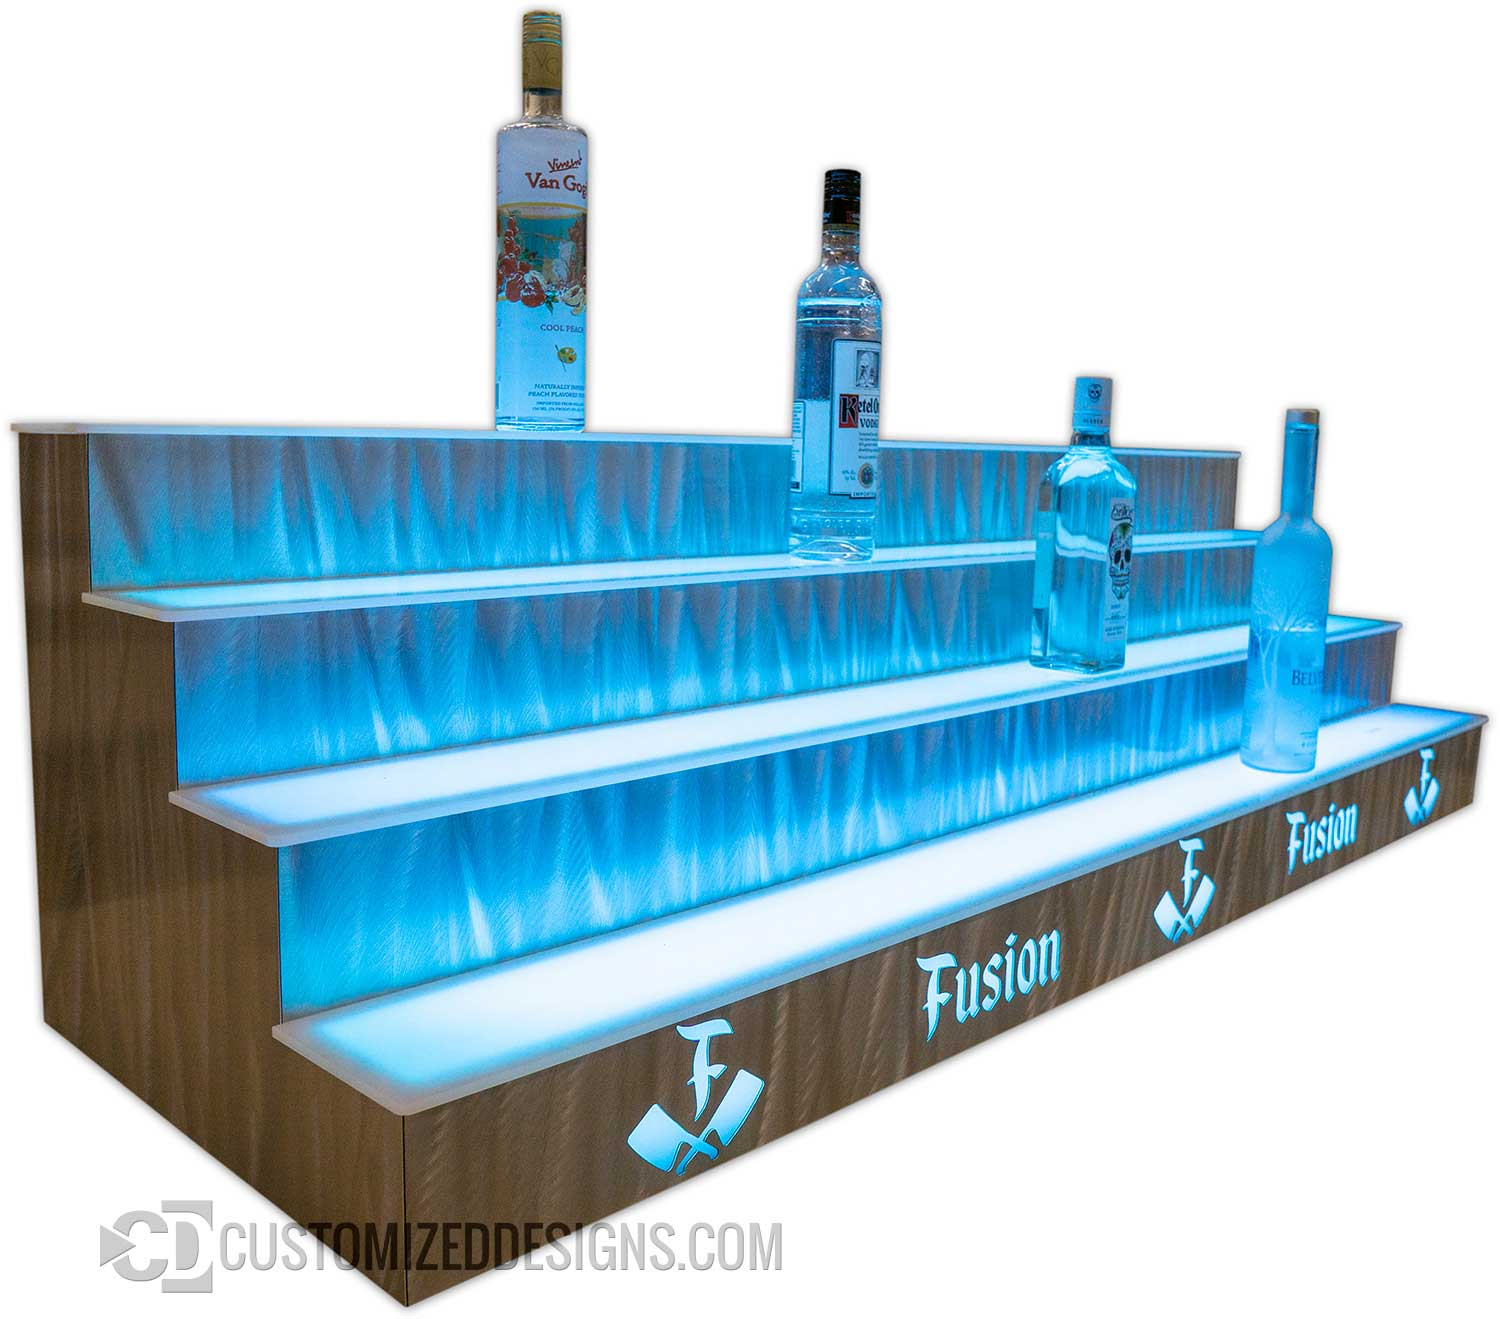 4 Tier Bottle Display w/ Grasshopper Metal Finish